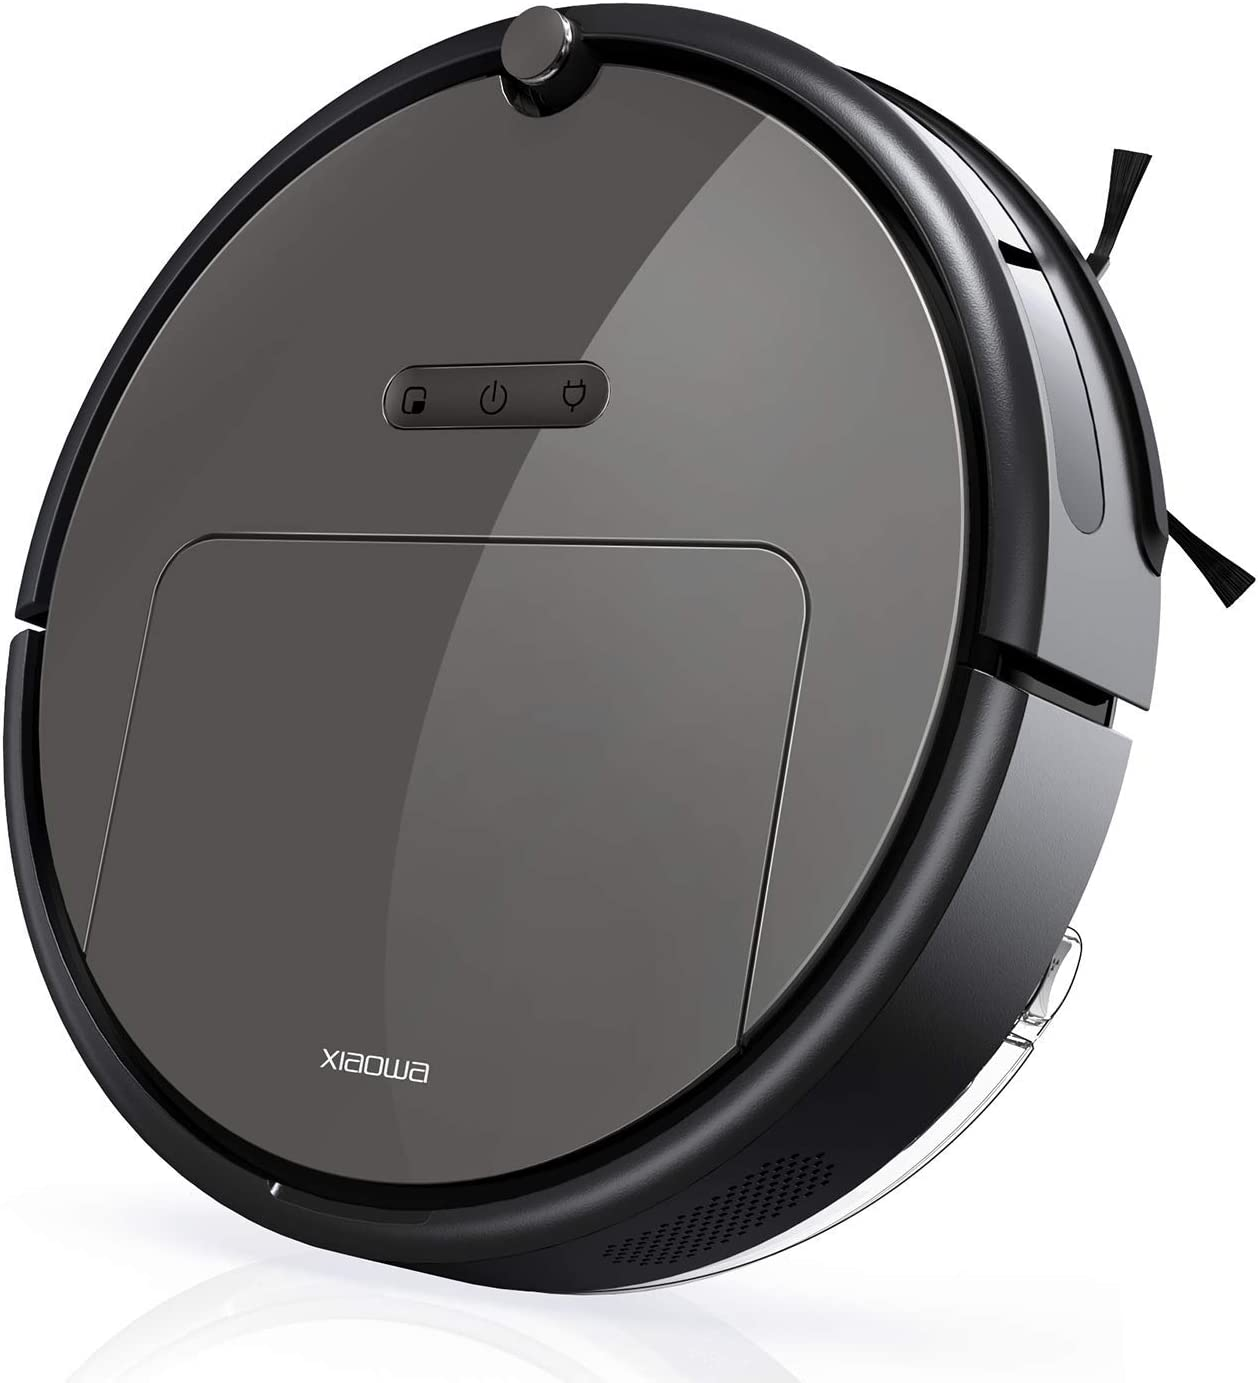 Roborock Robot Vacuum and Mop: 2000Pa Strong Suction, App Control, and Scheduling, Route Planning, Handles Hard Floors and Carpets Ideal for Homes with Pets